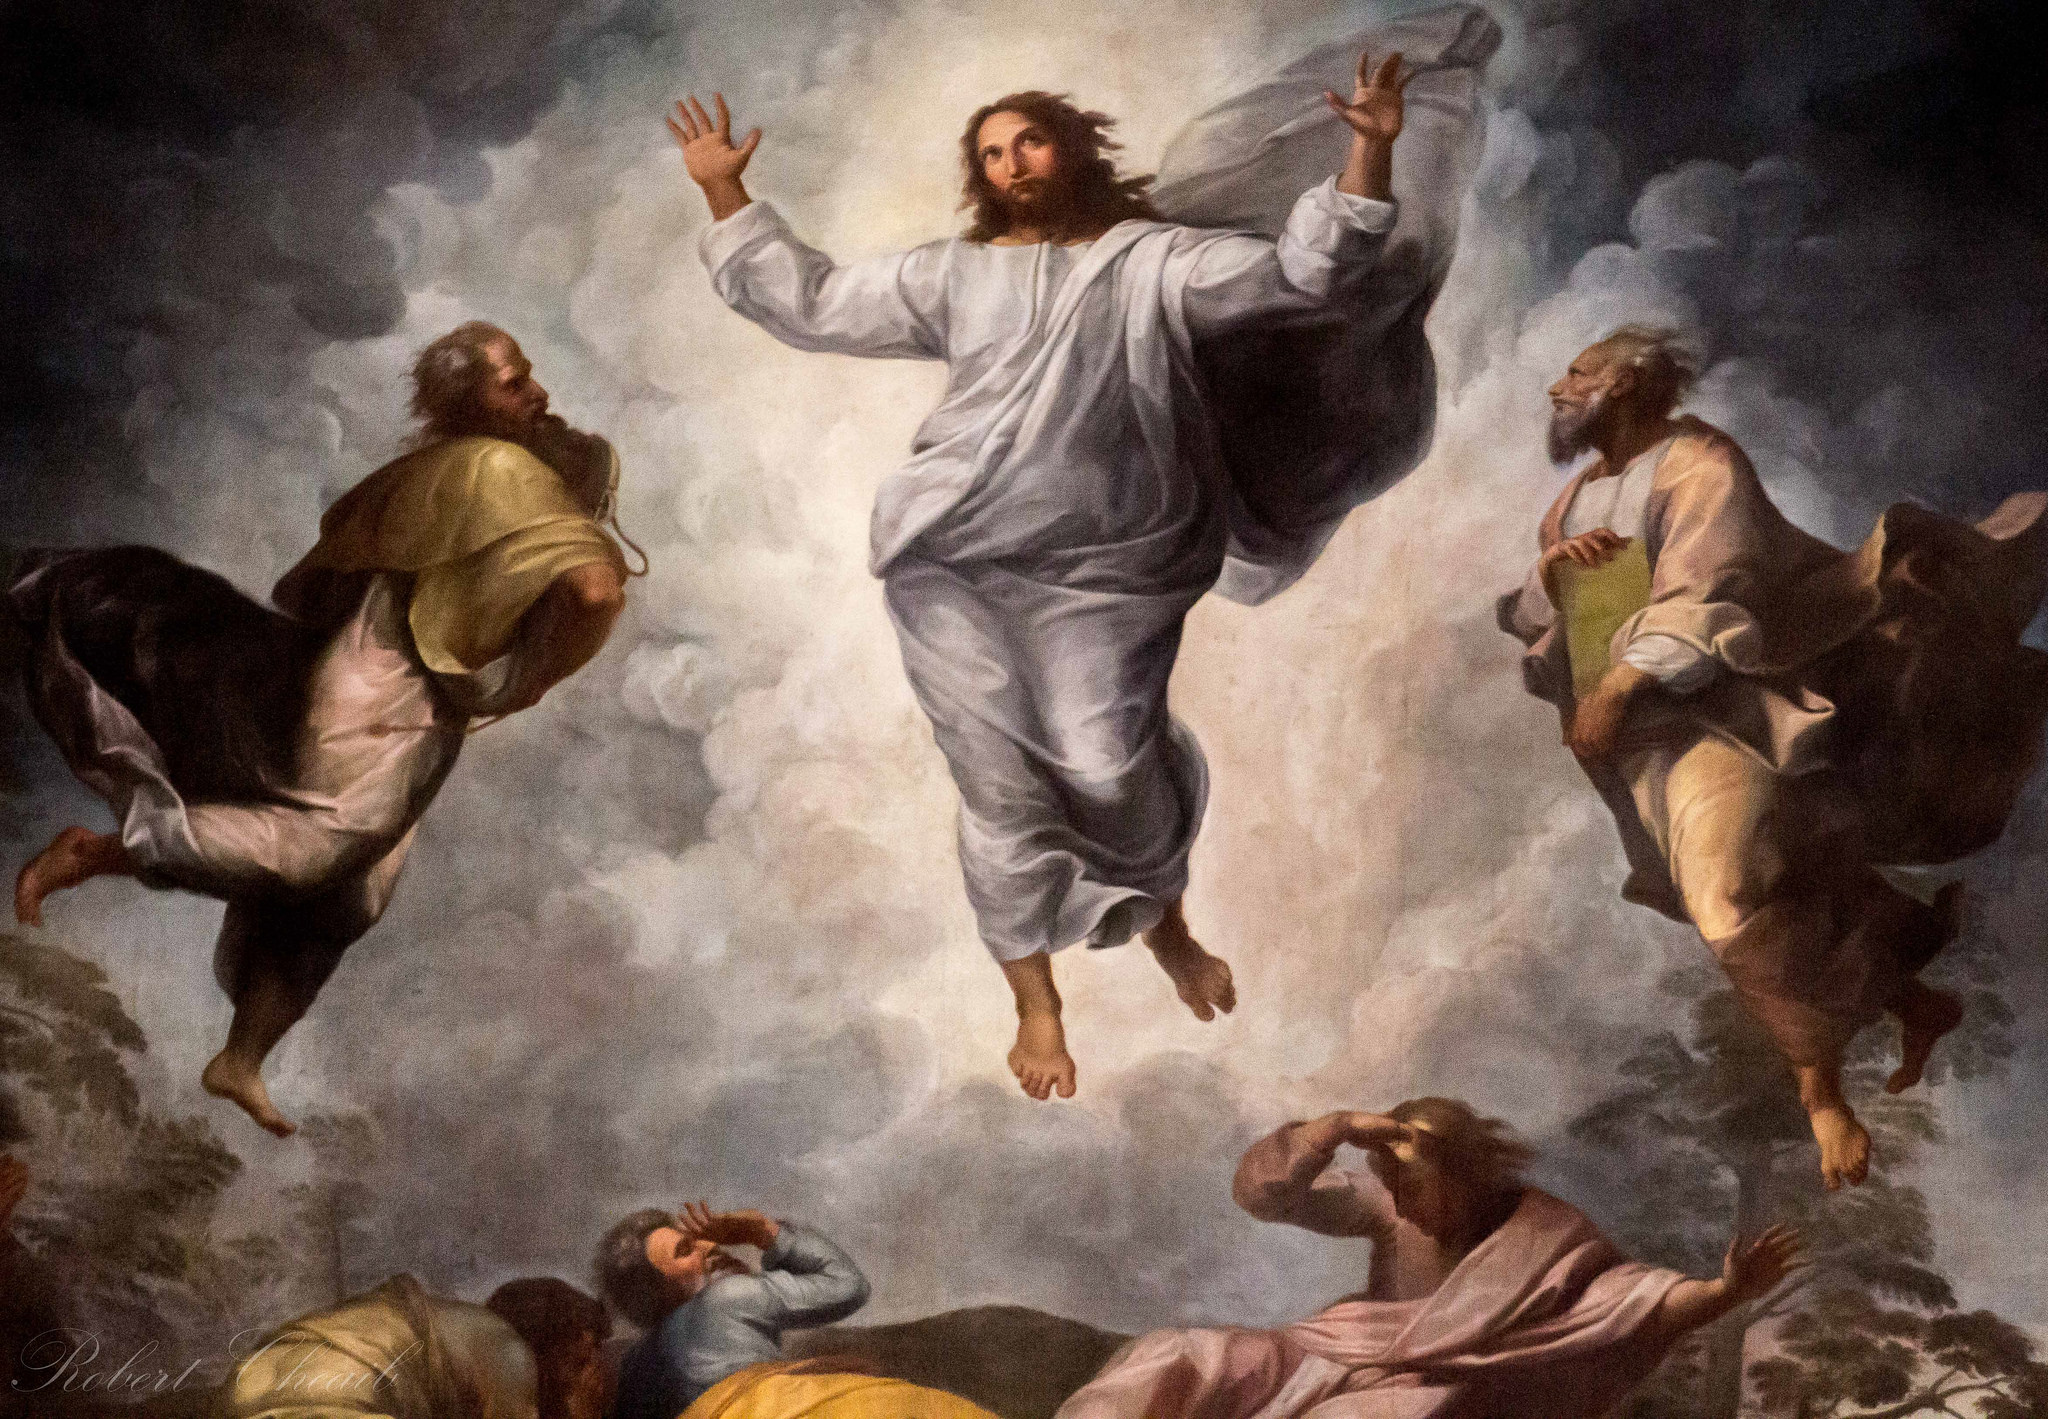 Transfiguration of the Lord. Affresco from the Vatican.